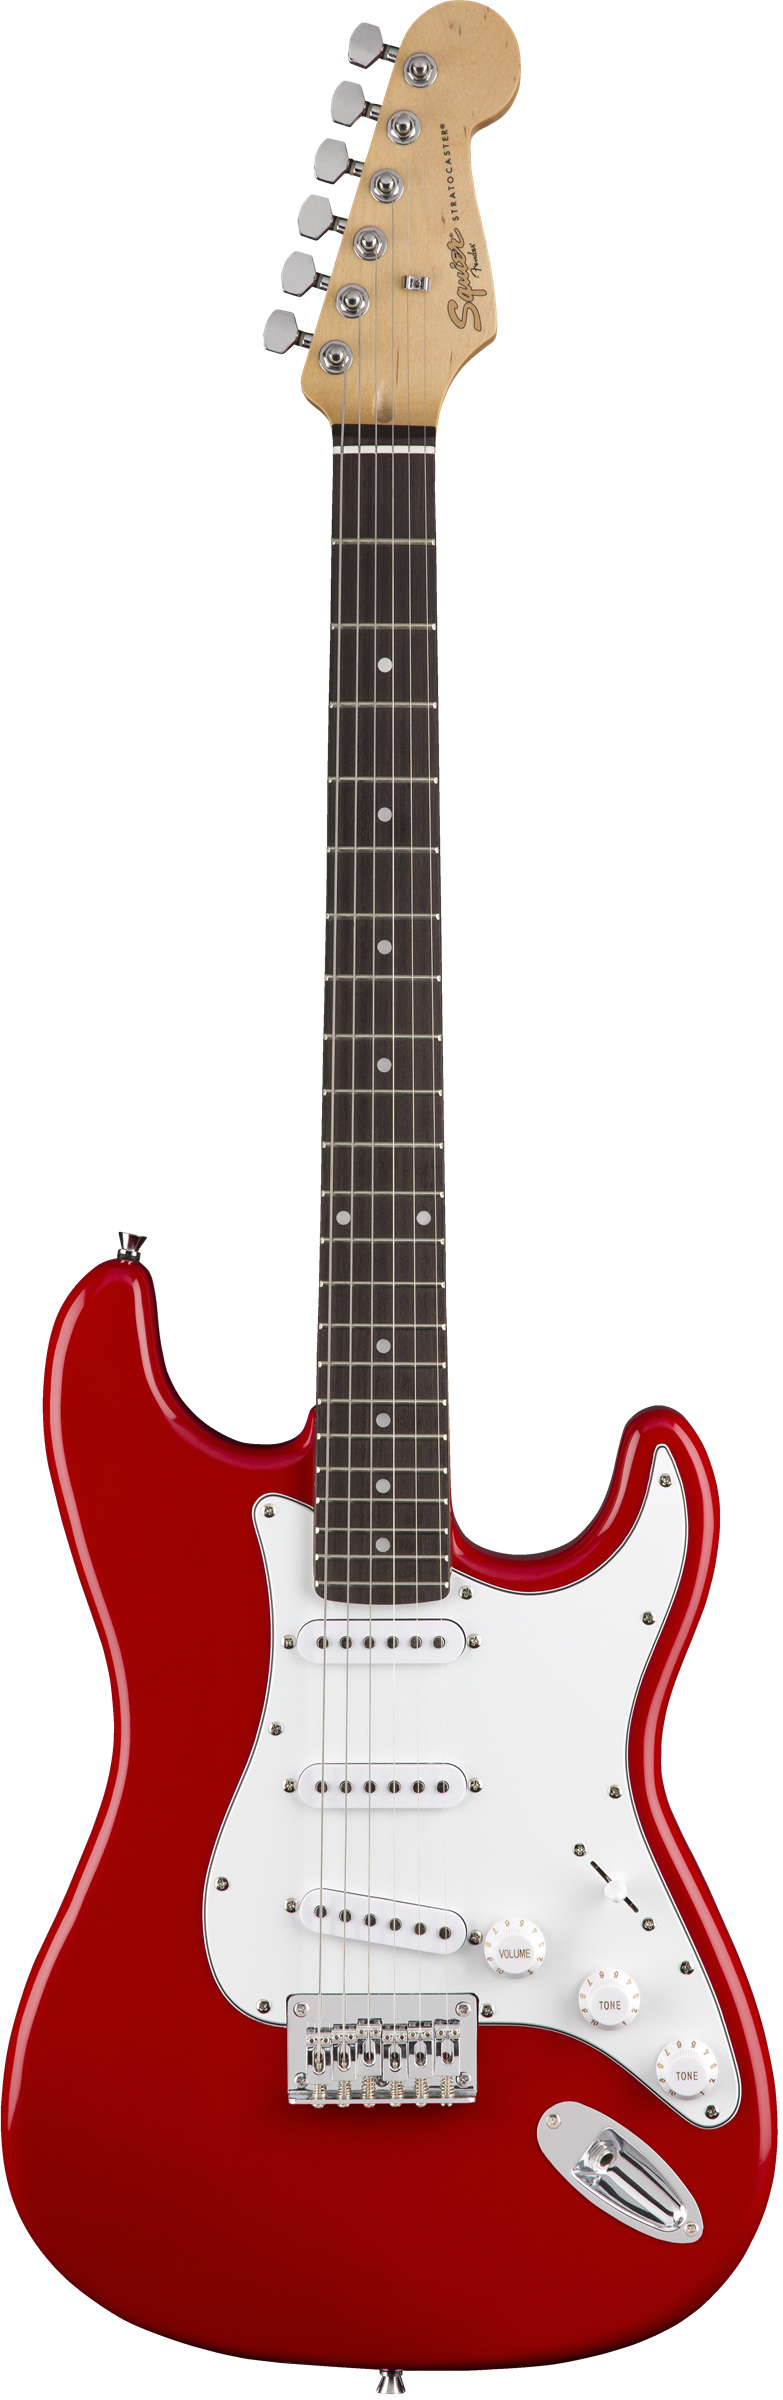 FENDER SQUIER MM STRATOCASTER HARD TAIL RED электрогитара